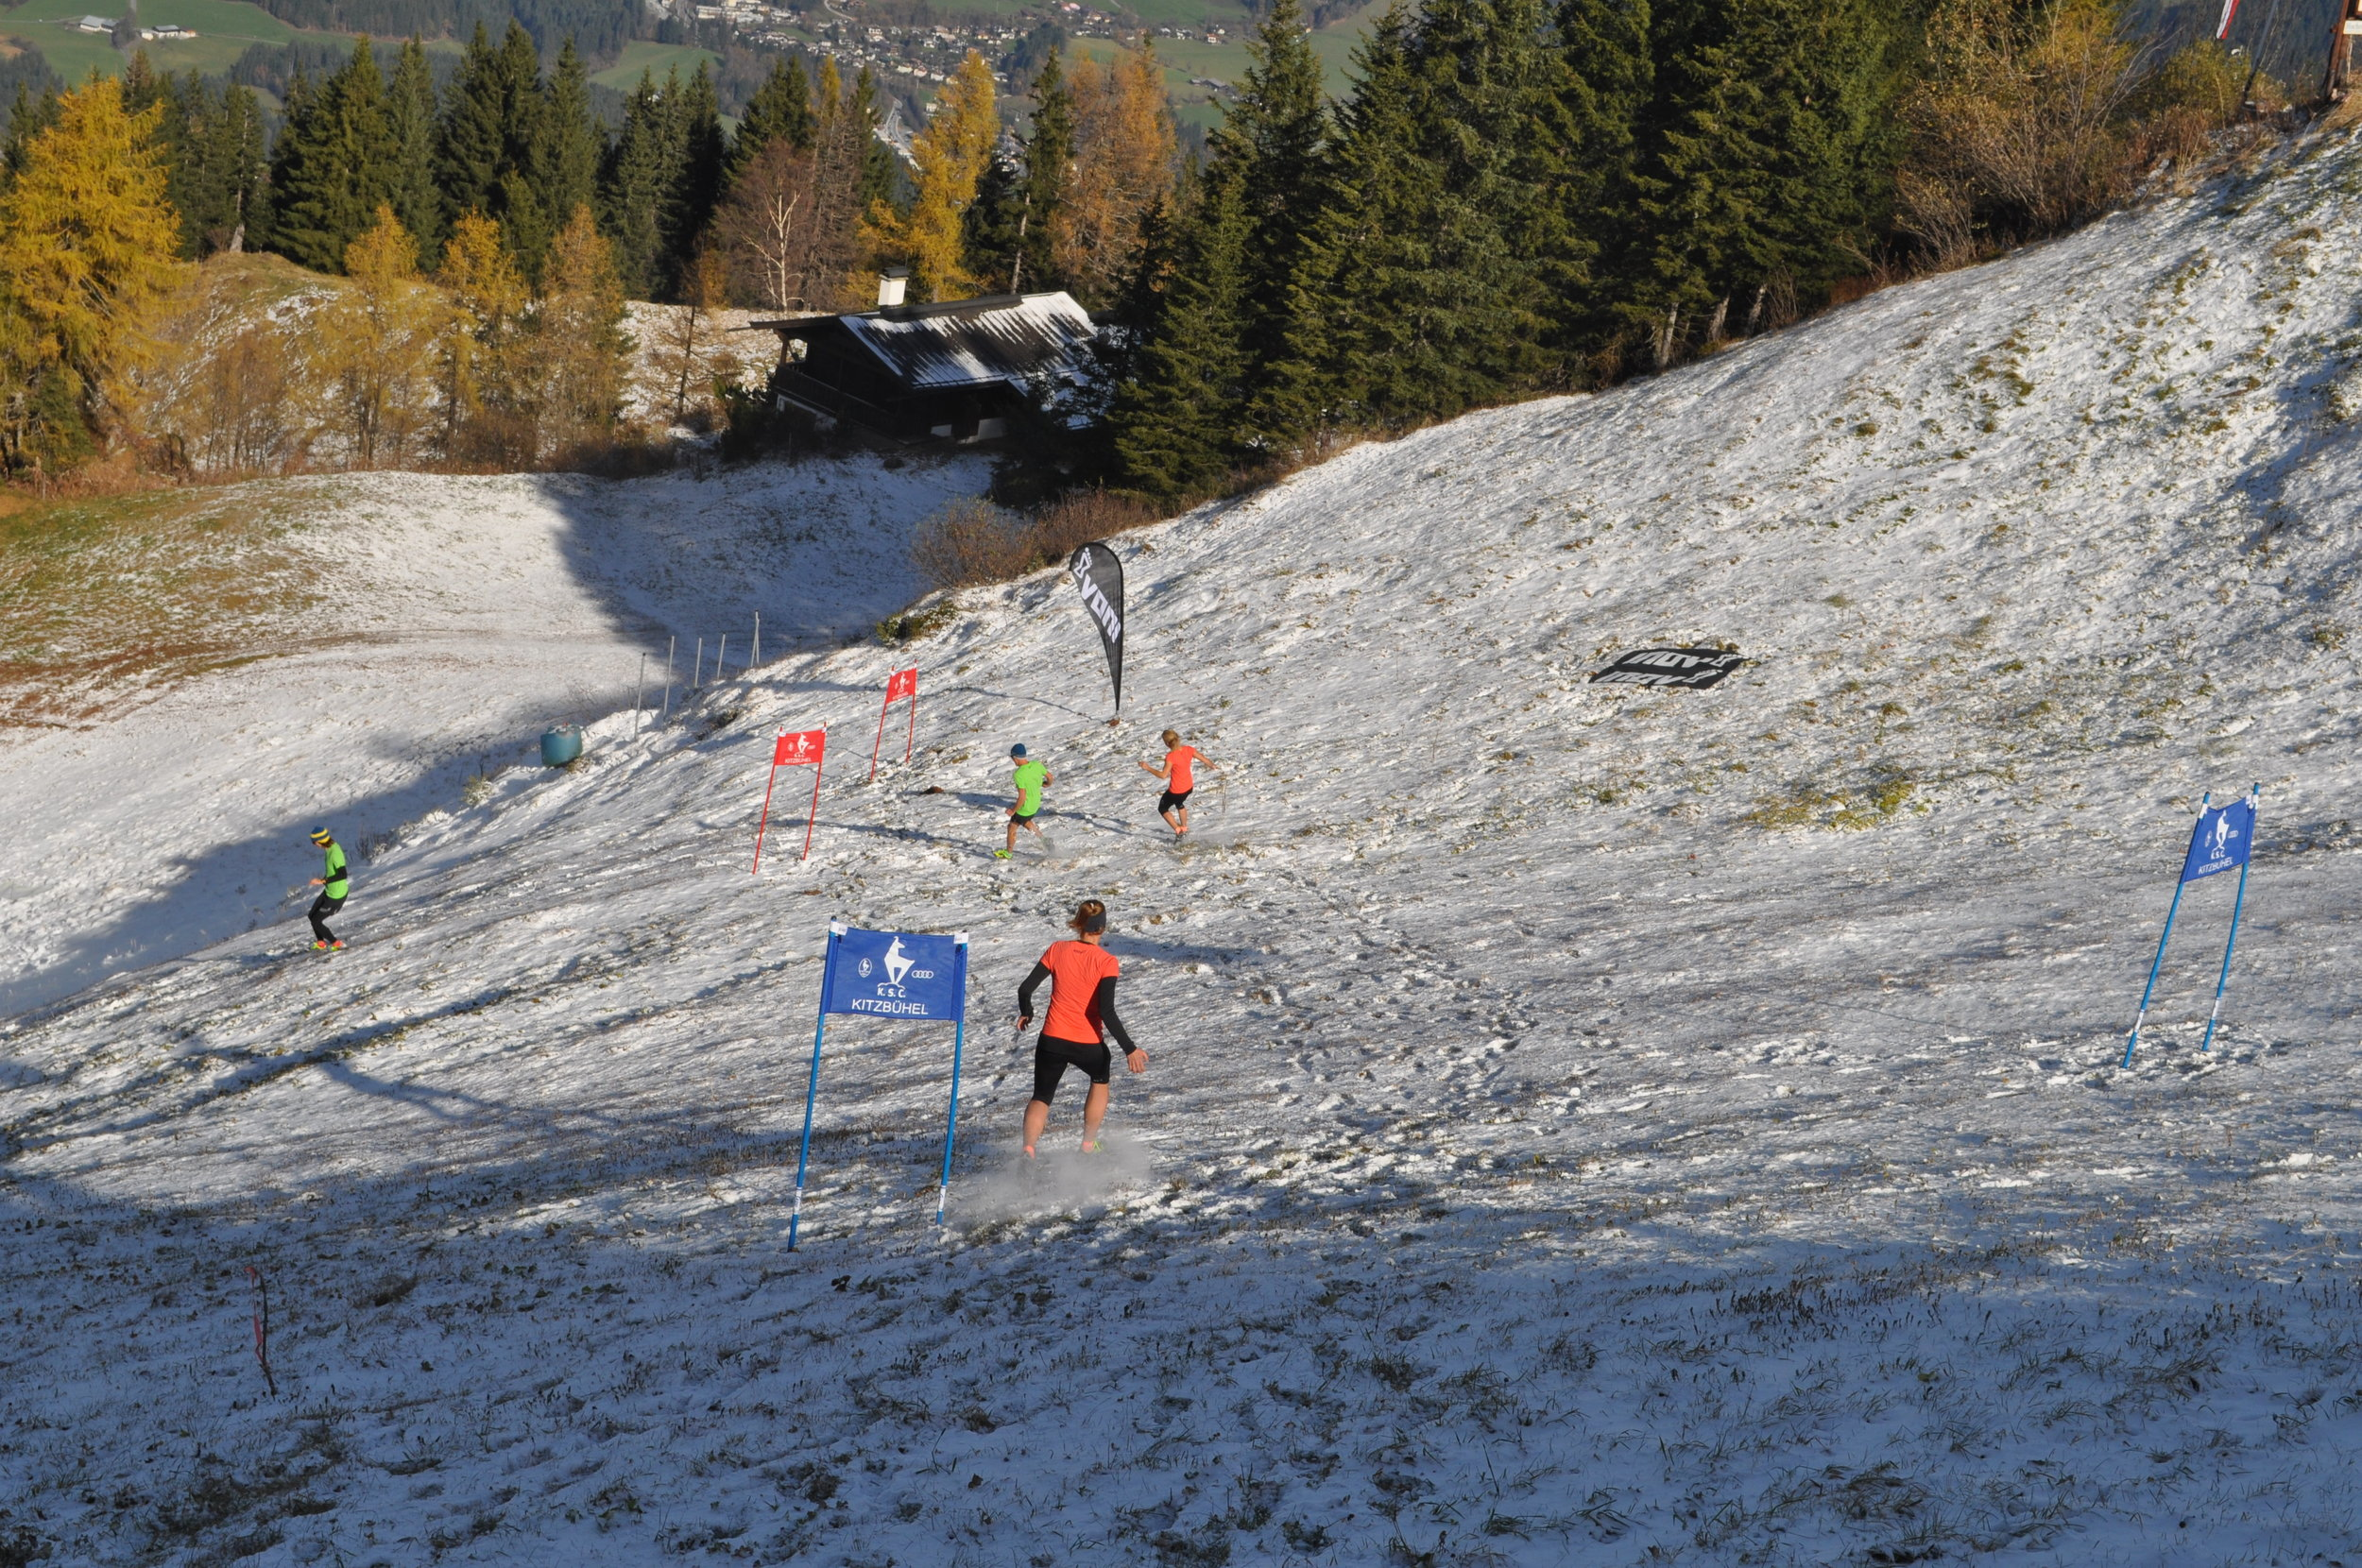 The Descent_RACE KITZBÜHEL_running1.JPG